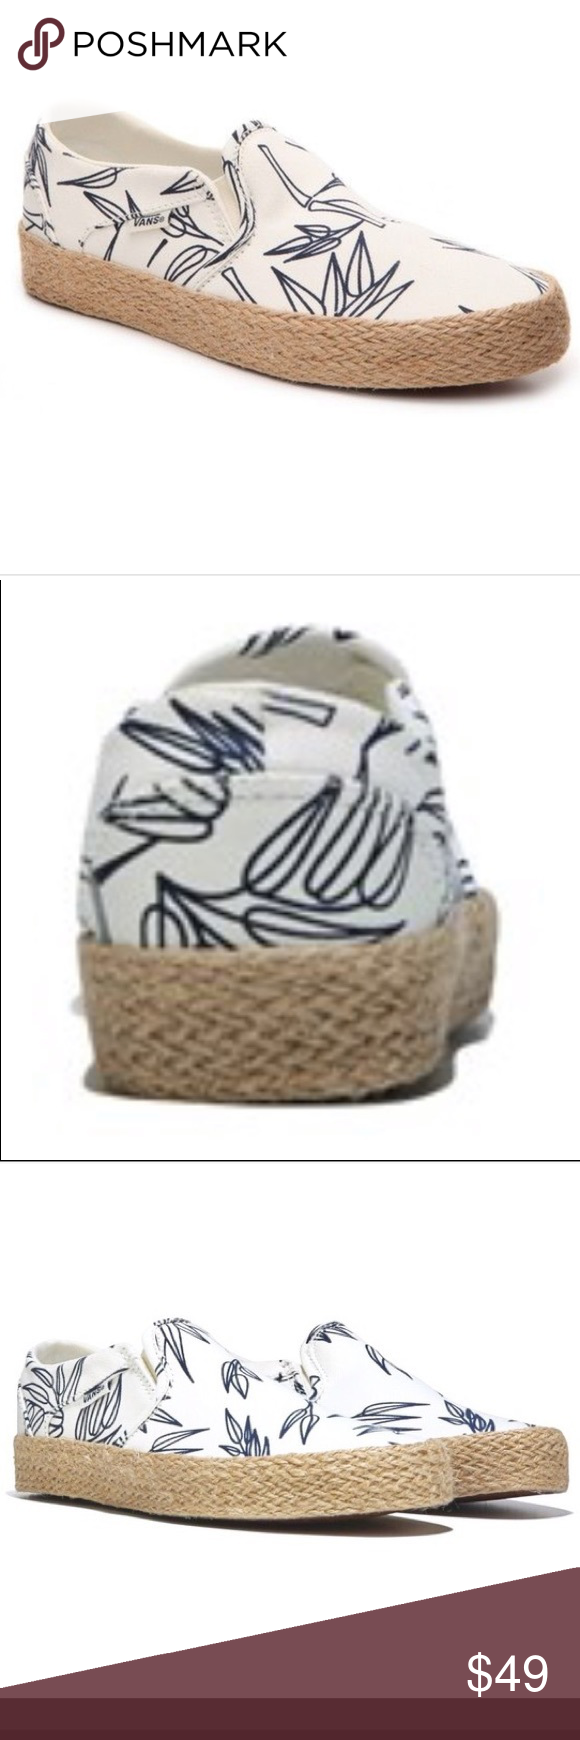 1a8aef29d4 Women s Vans asher bamboo espadrilles slip ons Women s size 9 but I  honestly think they fit more like a ten I can take measurements and will be  adding extra ...